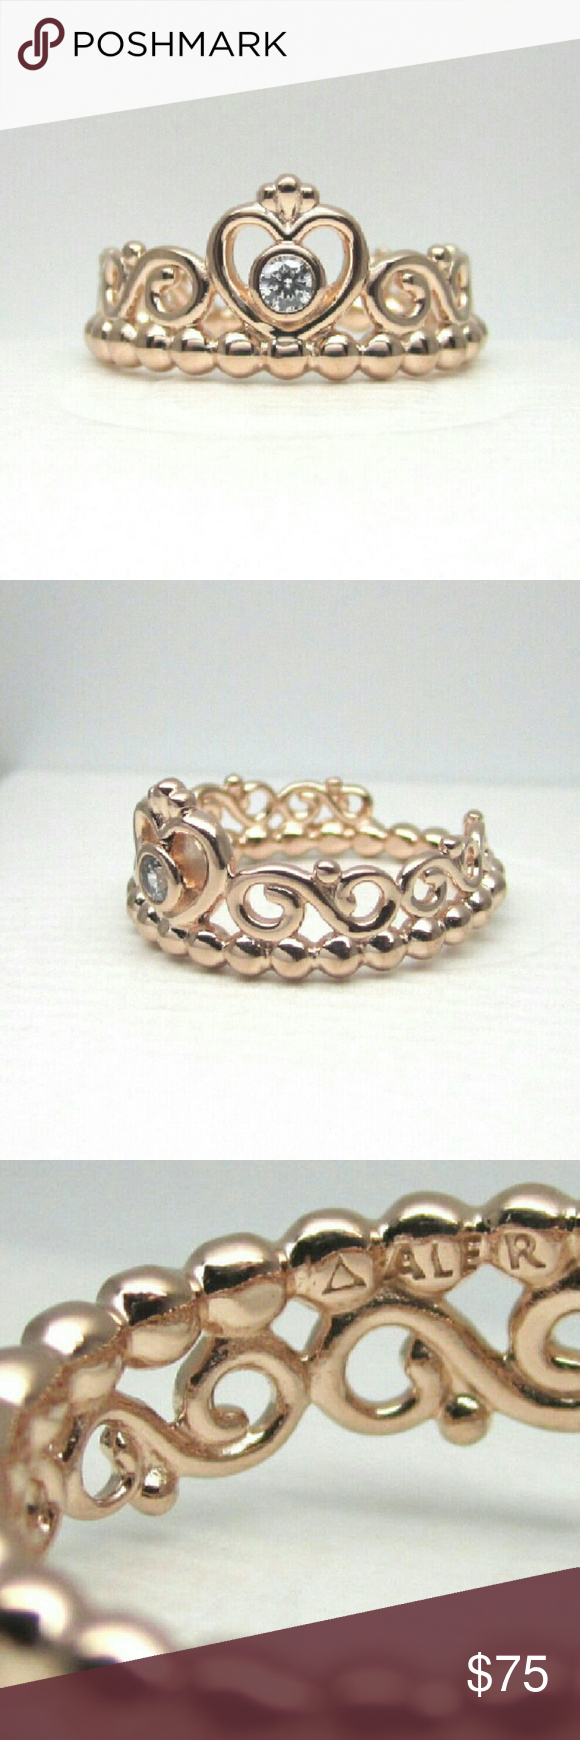 Pandora Rose Gold My Princess Tiara Ring # 5 Pandora Rose